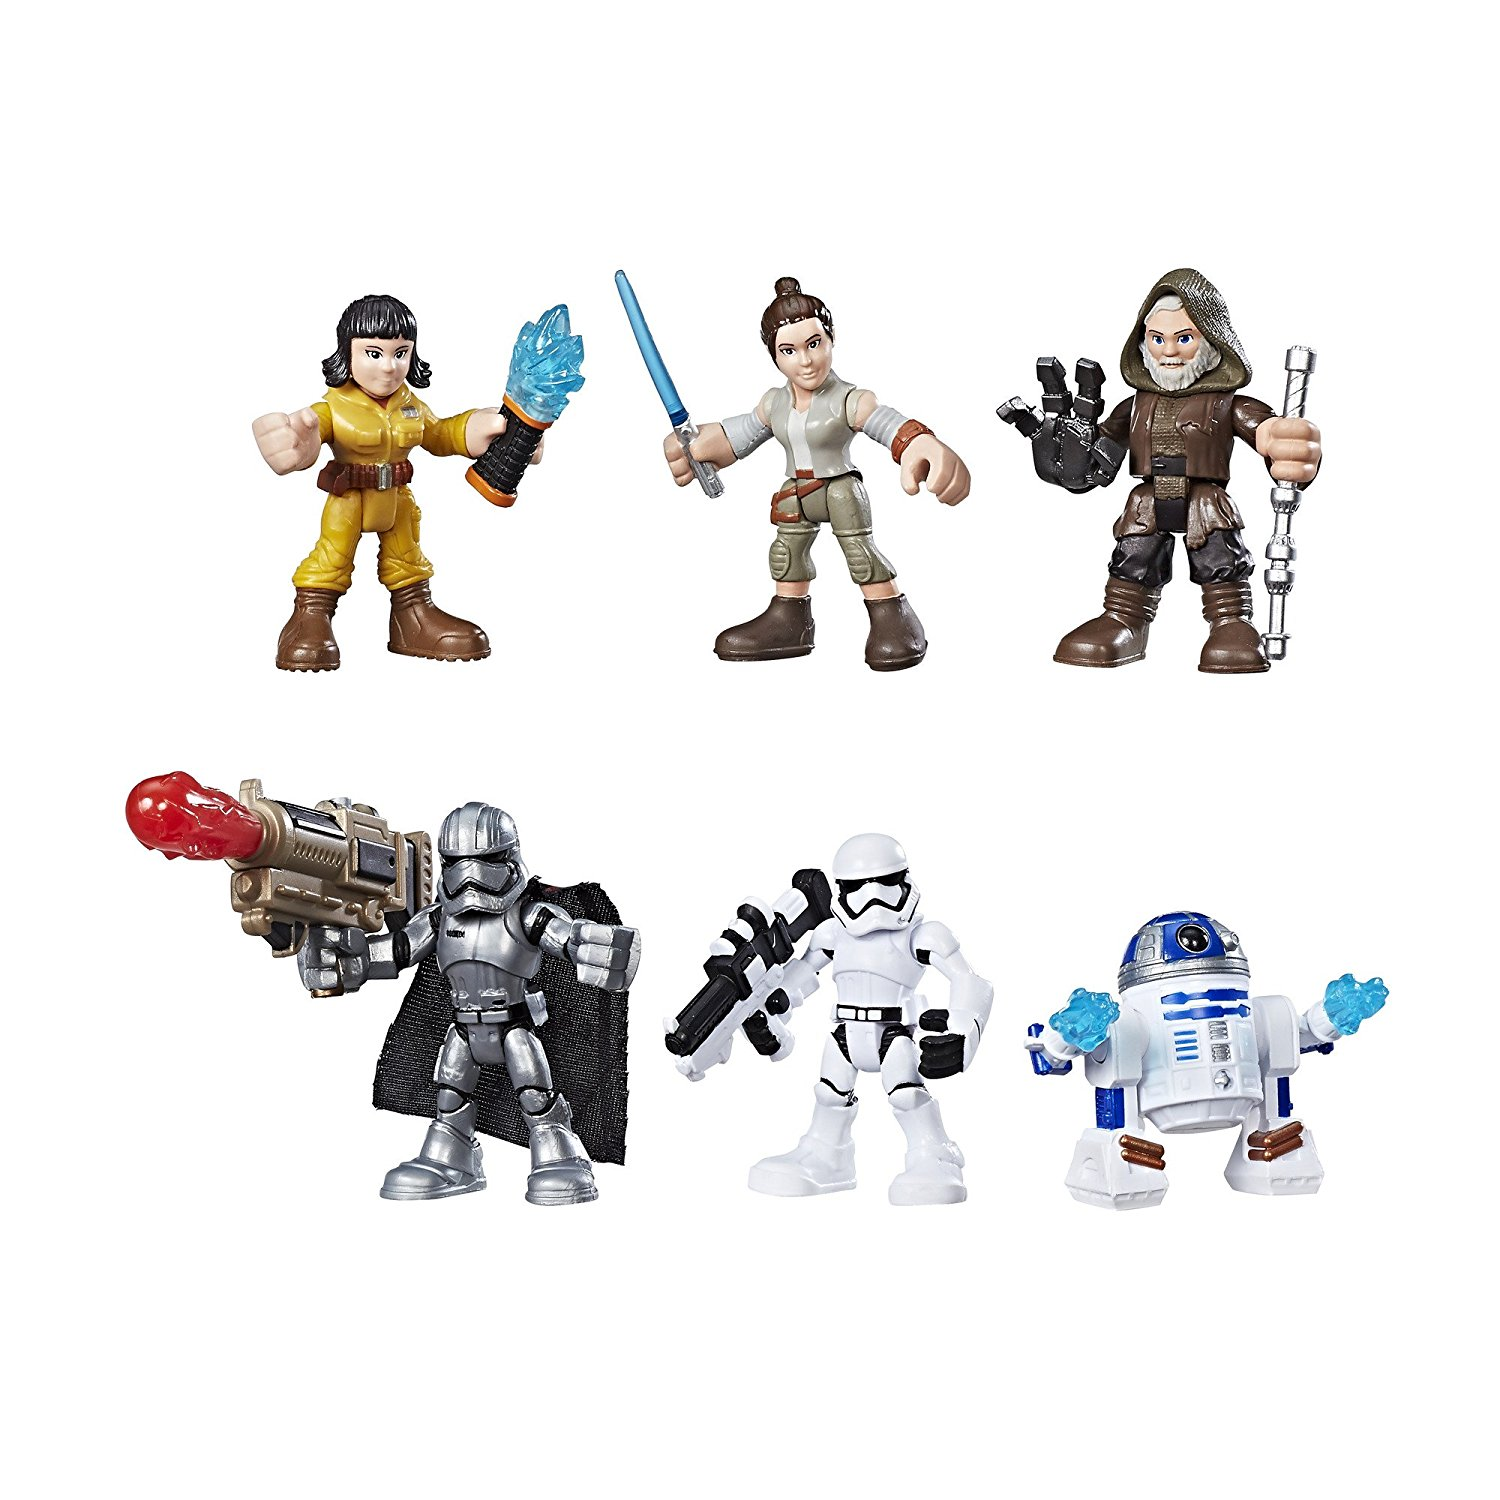 Galactic Heroes Star Wars Resistance VS. First Order Pack, Features 6 characters from Star... by